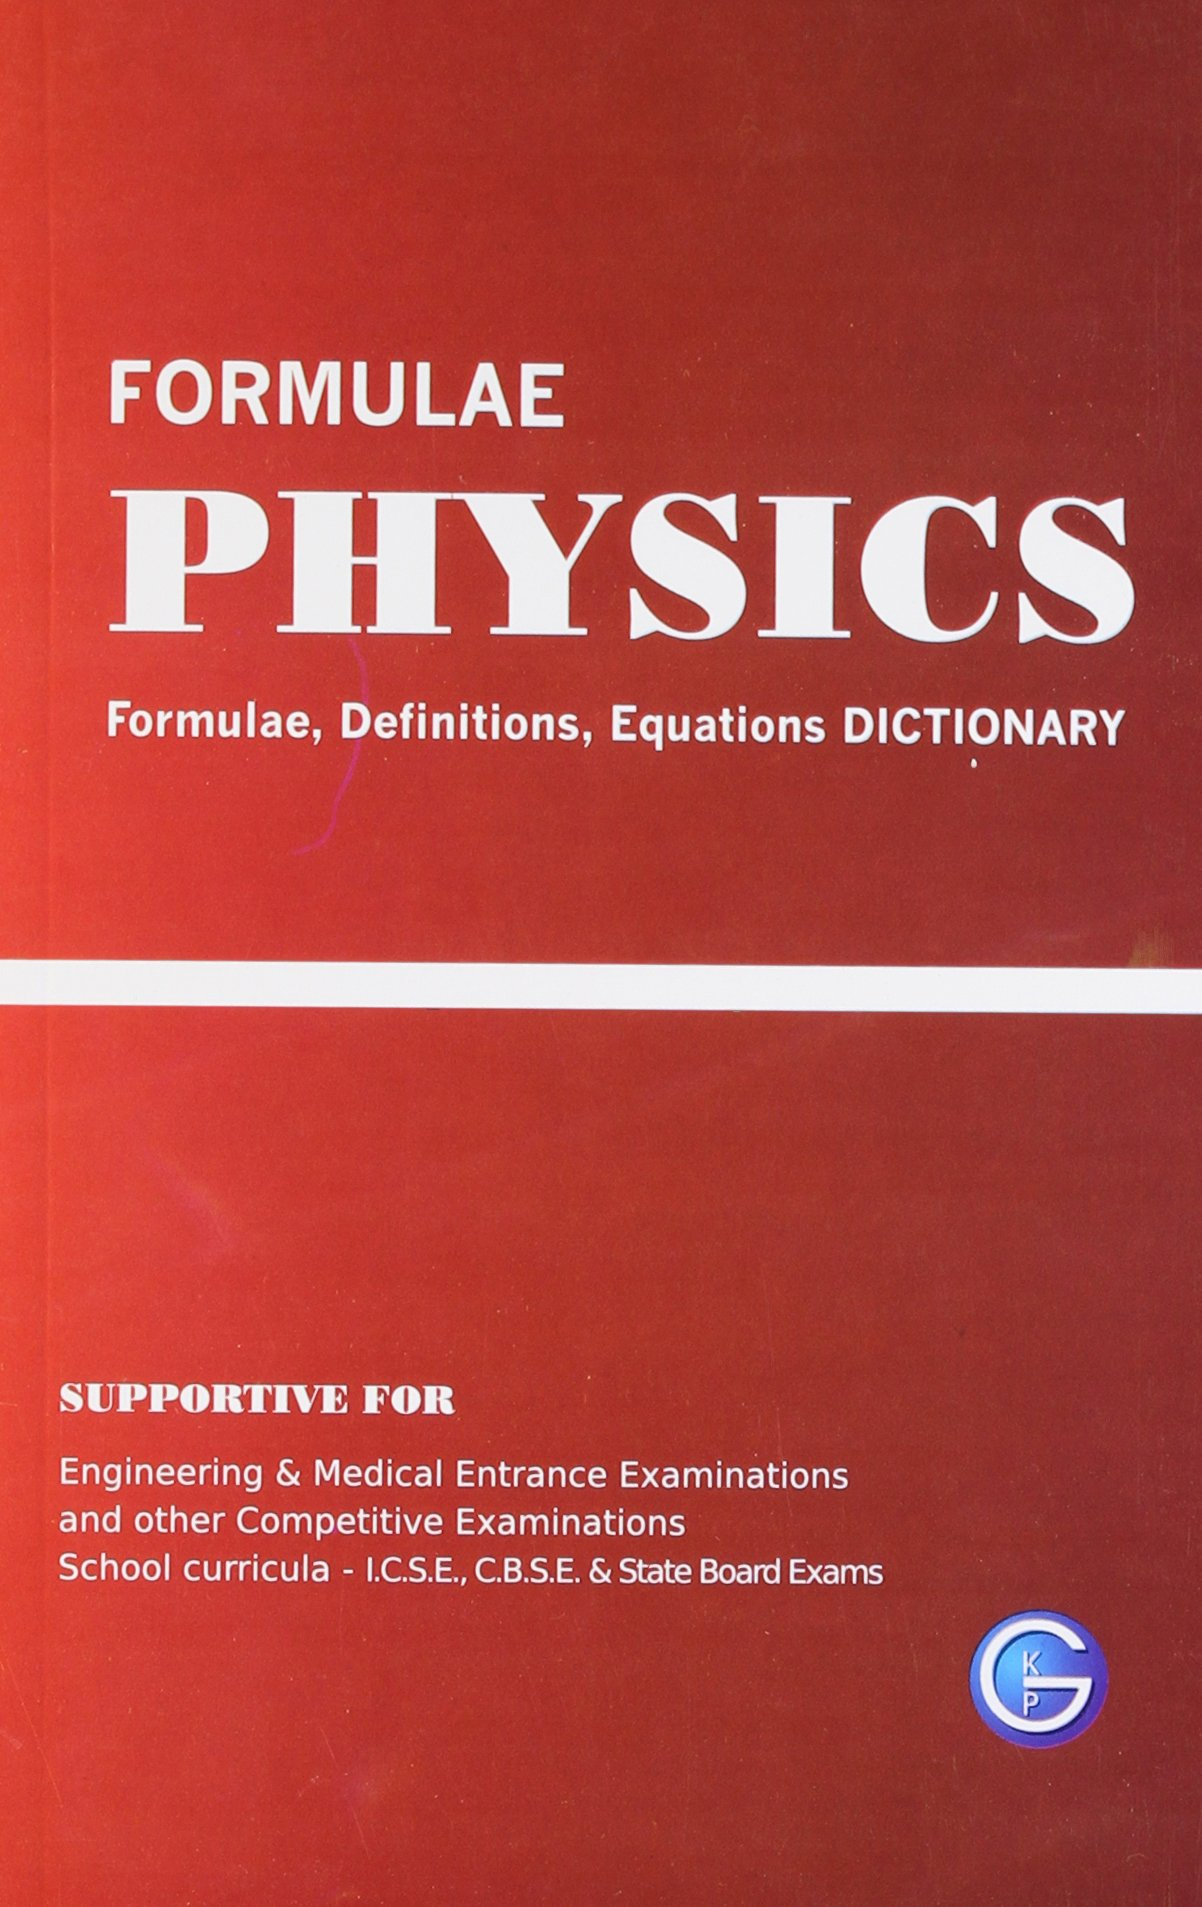 Physics formulae Definitions, Equation DICTIONARY.: Amazon.in: GKP: Books